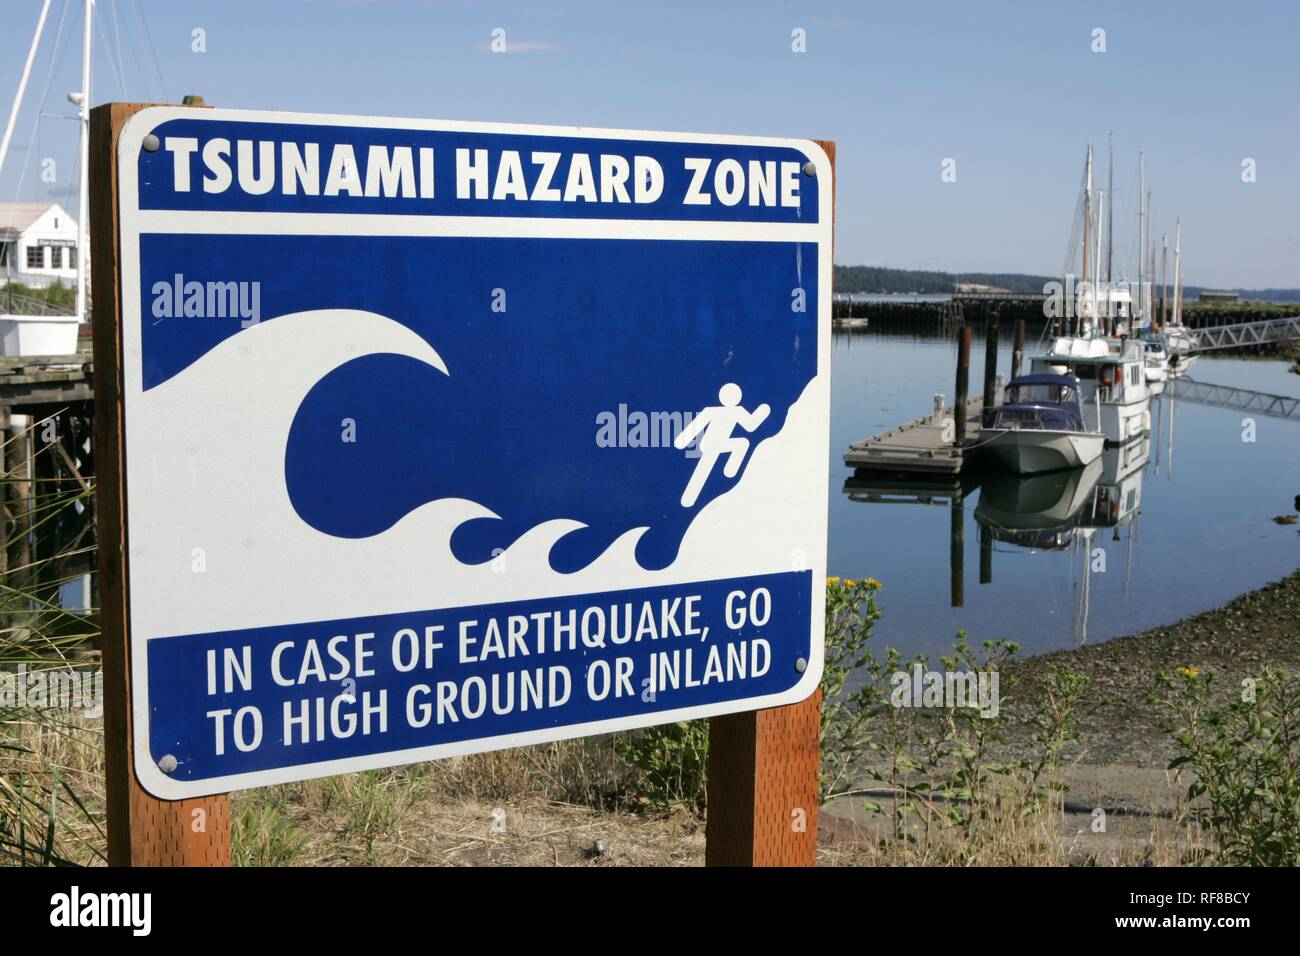 Tsunami warning signs in the harbour at Port Townsend, Washington